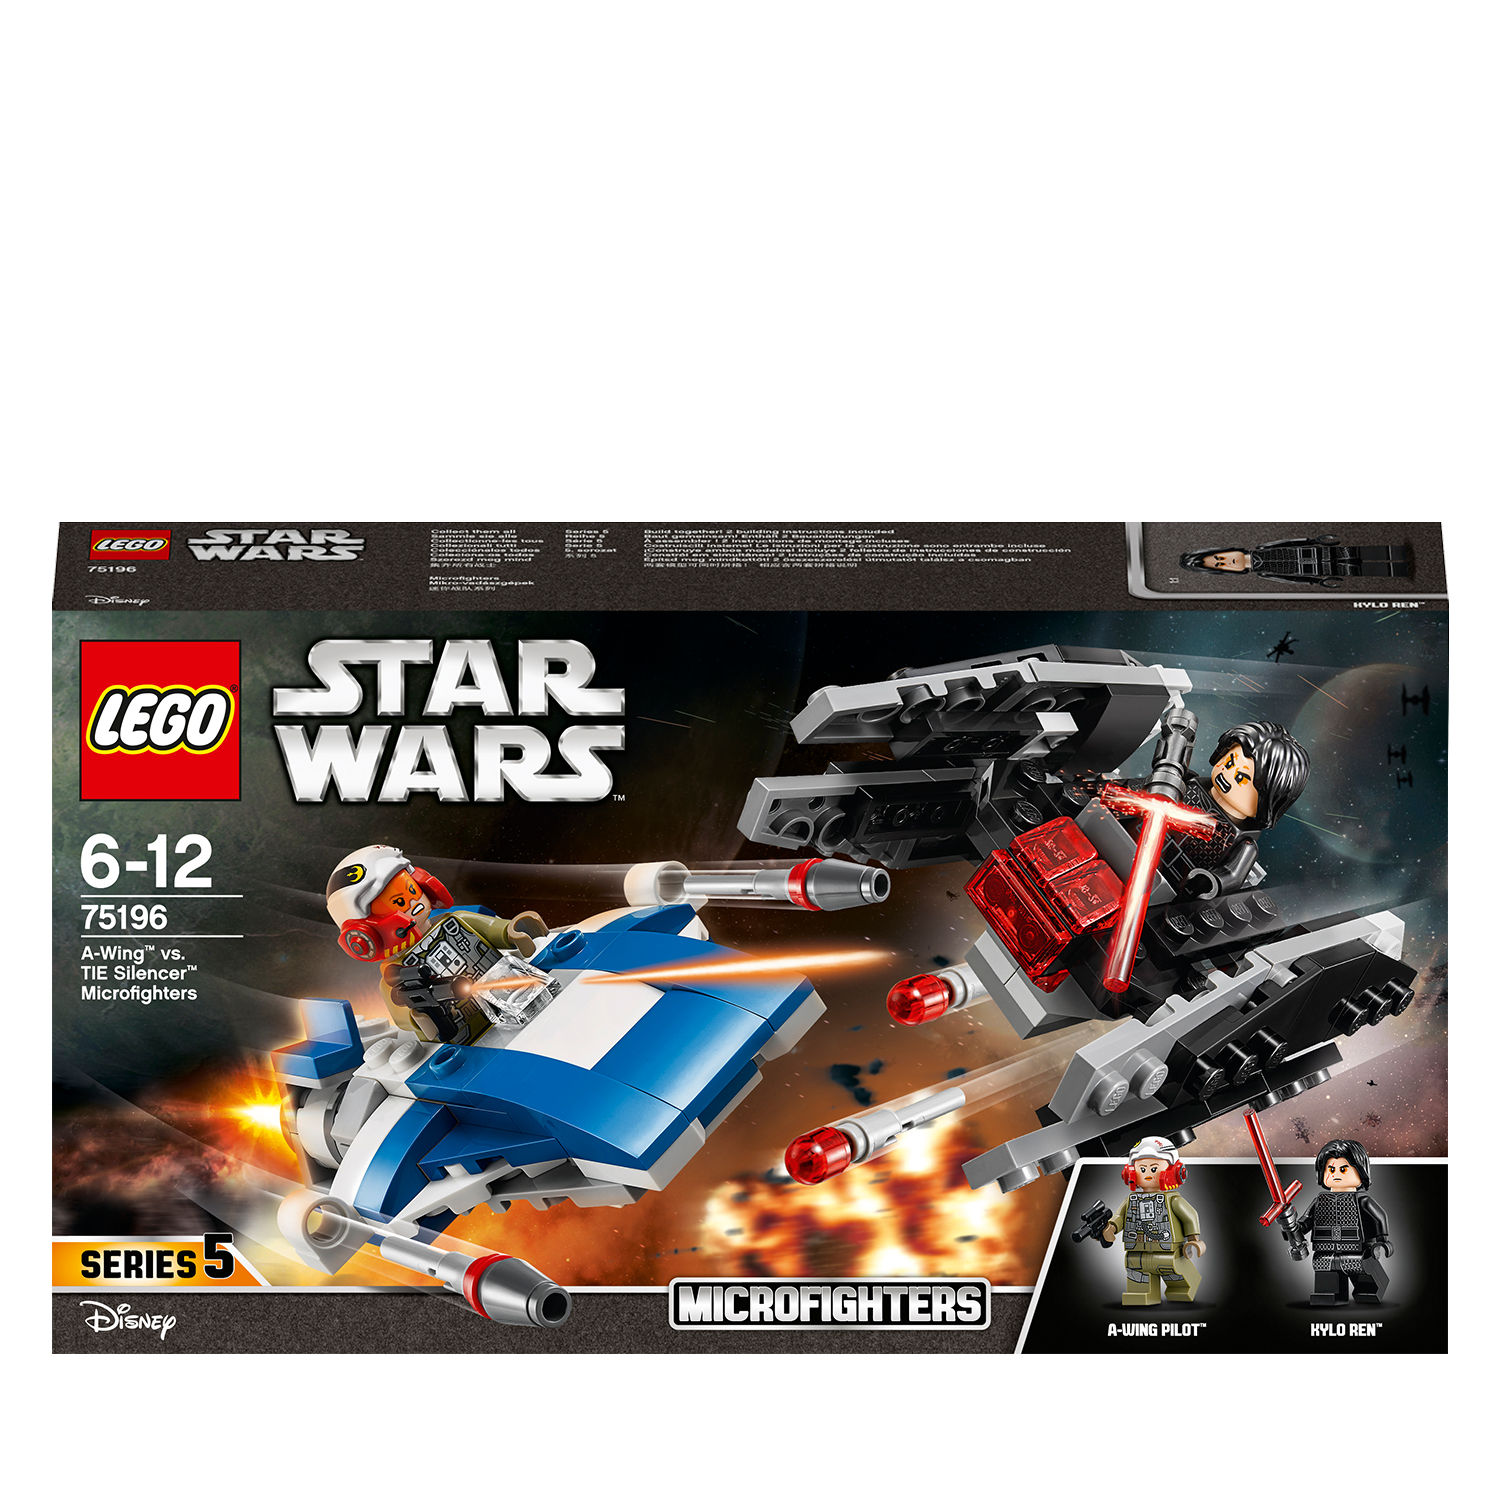 Lego Star Wars 75196 A-Wing contro Microfighter TIE Silencer